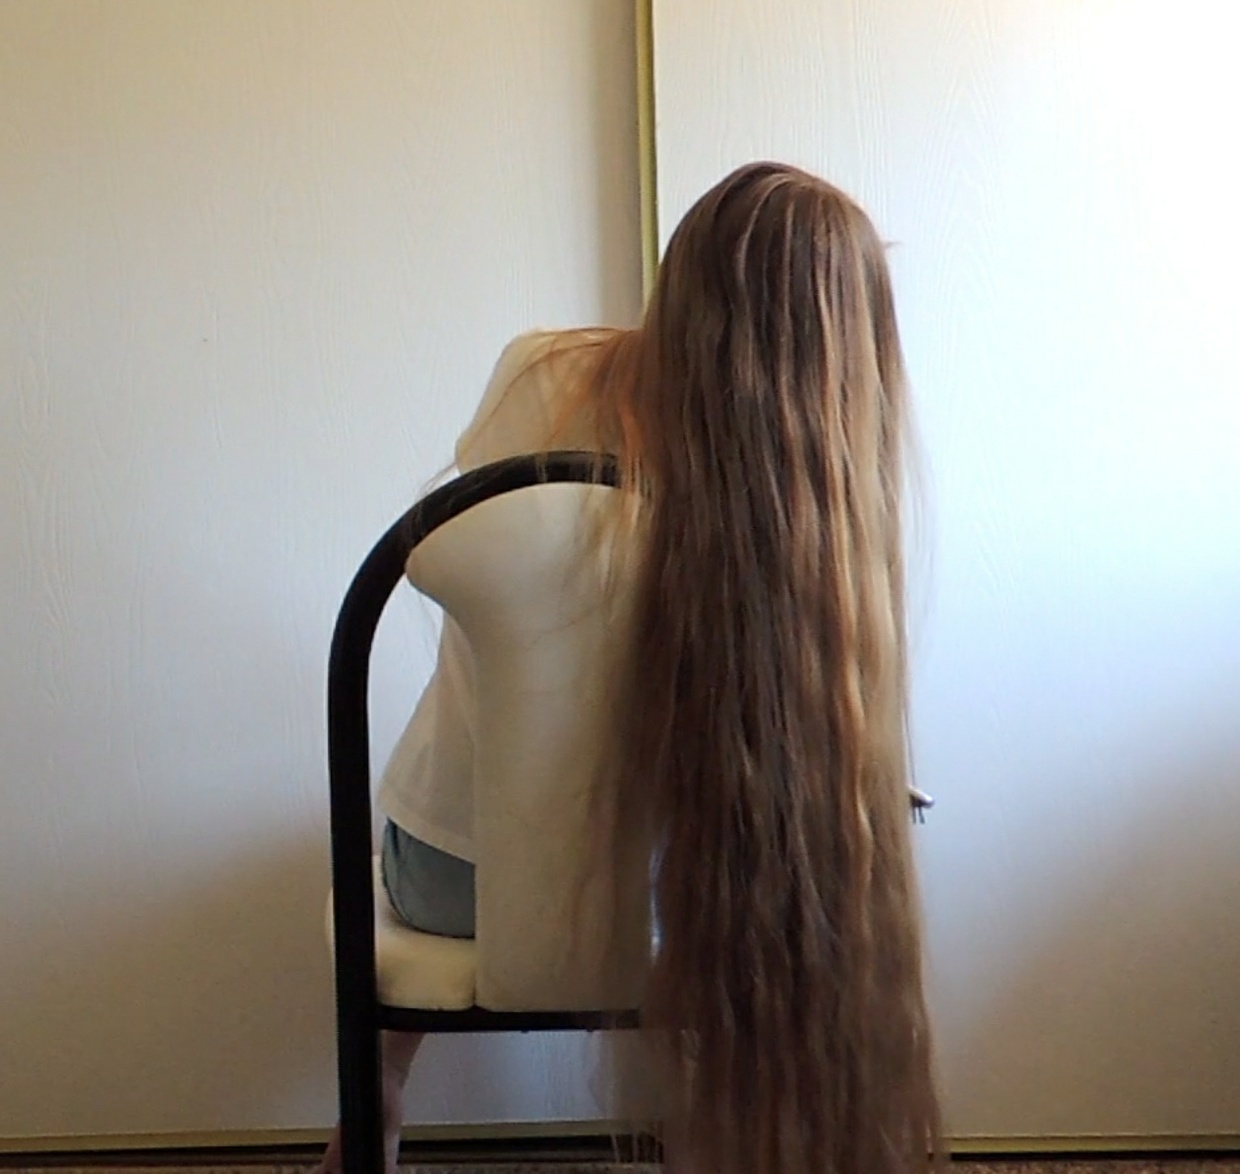 VIDEO - Knee length hair play in chair